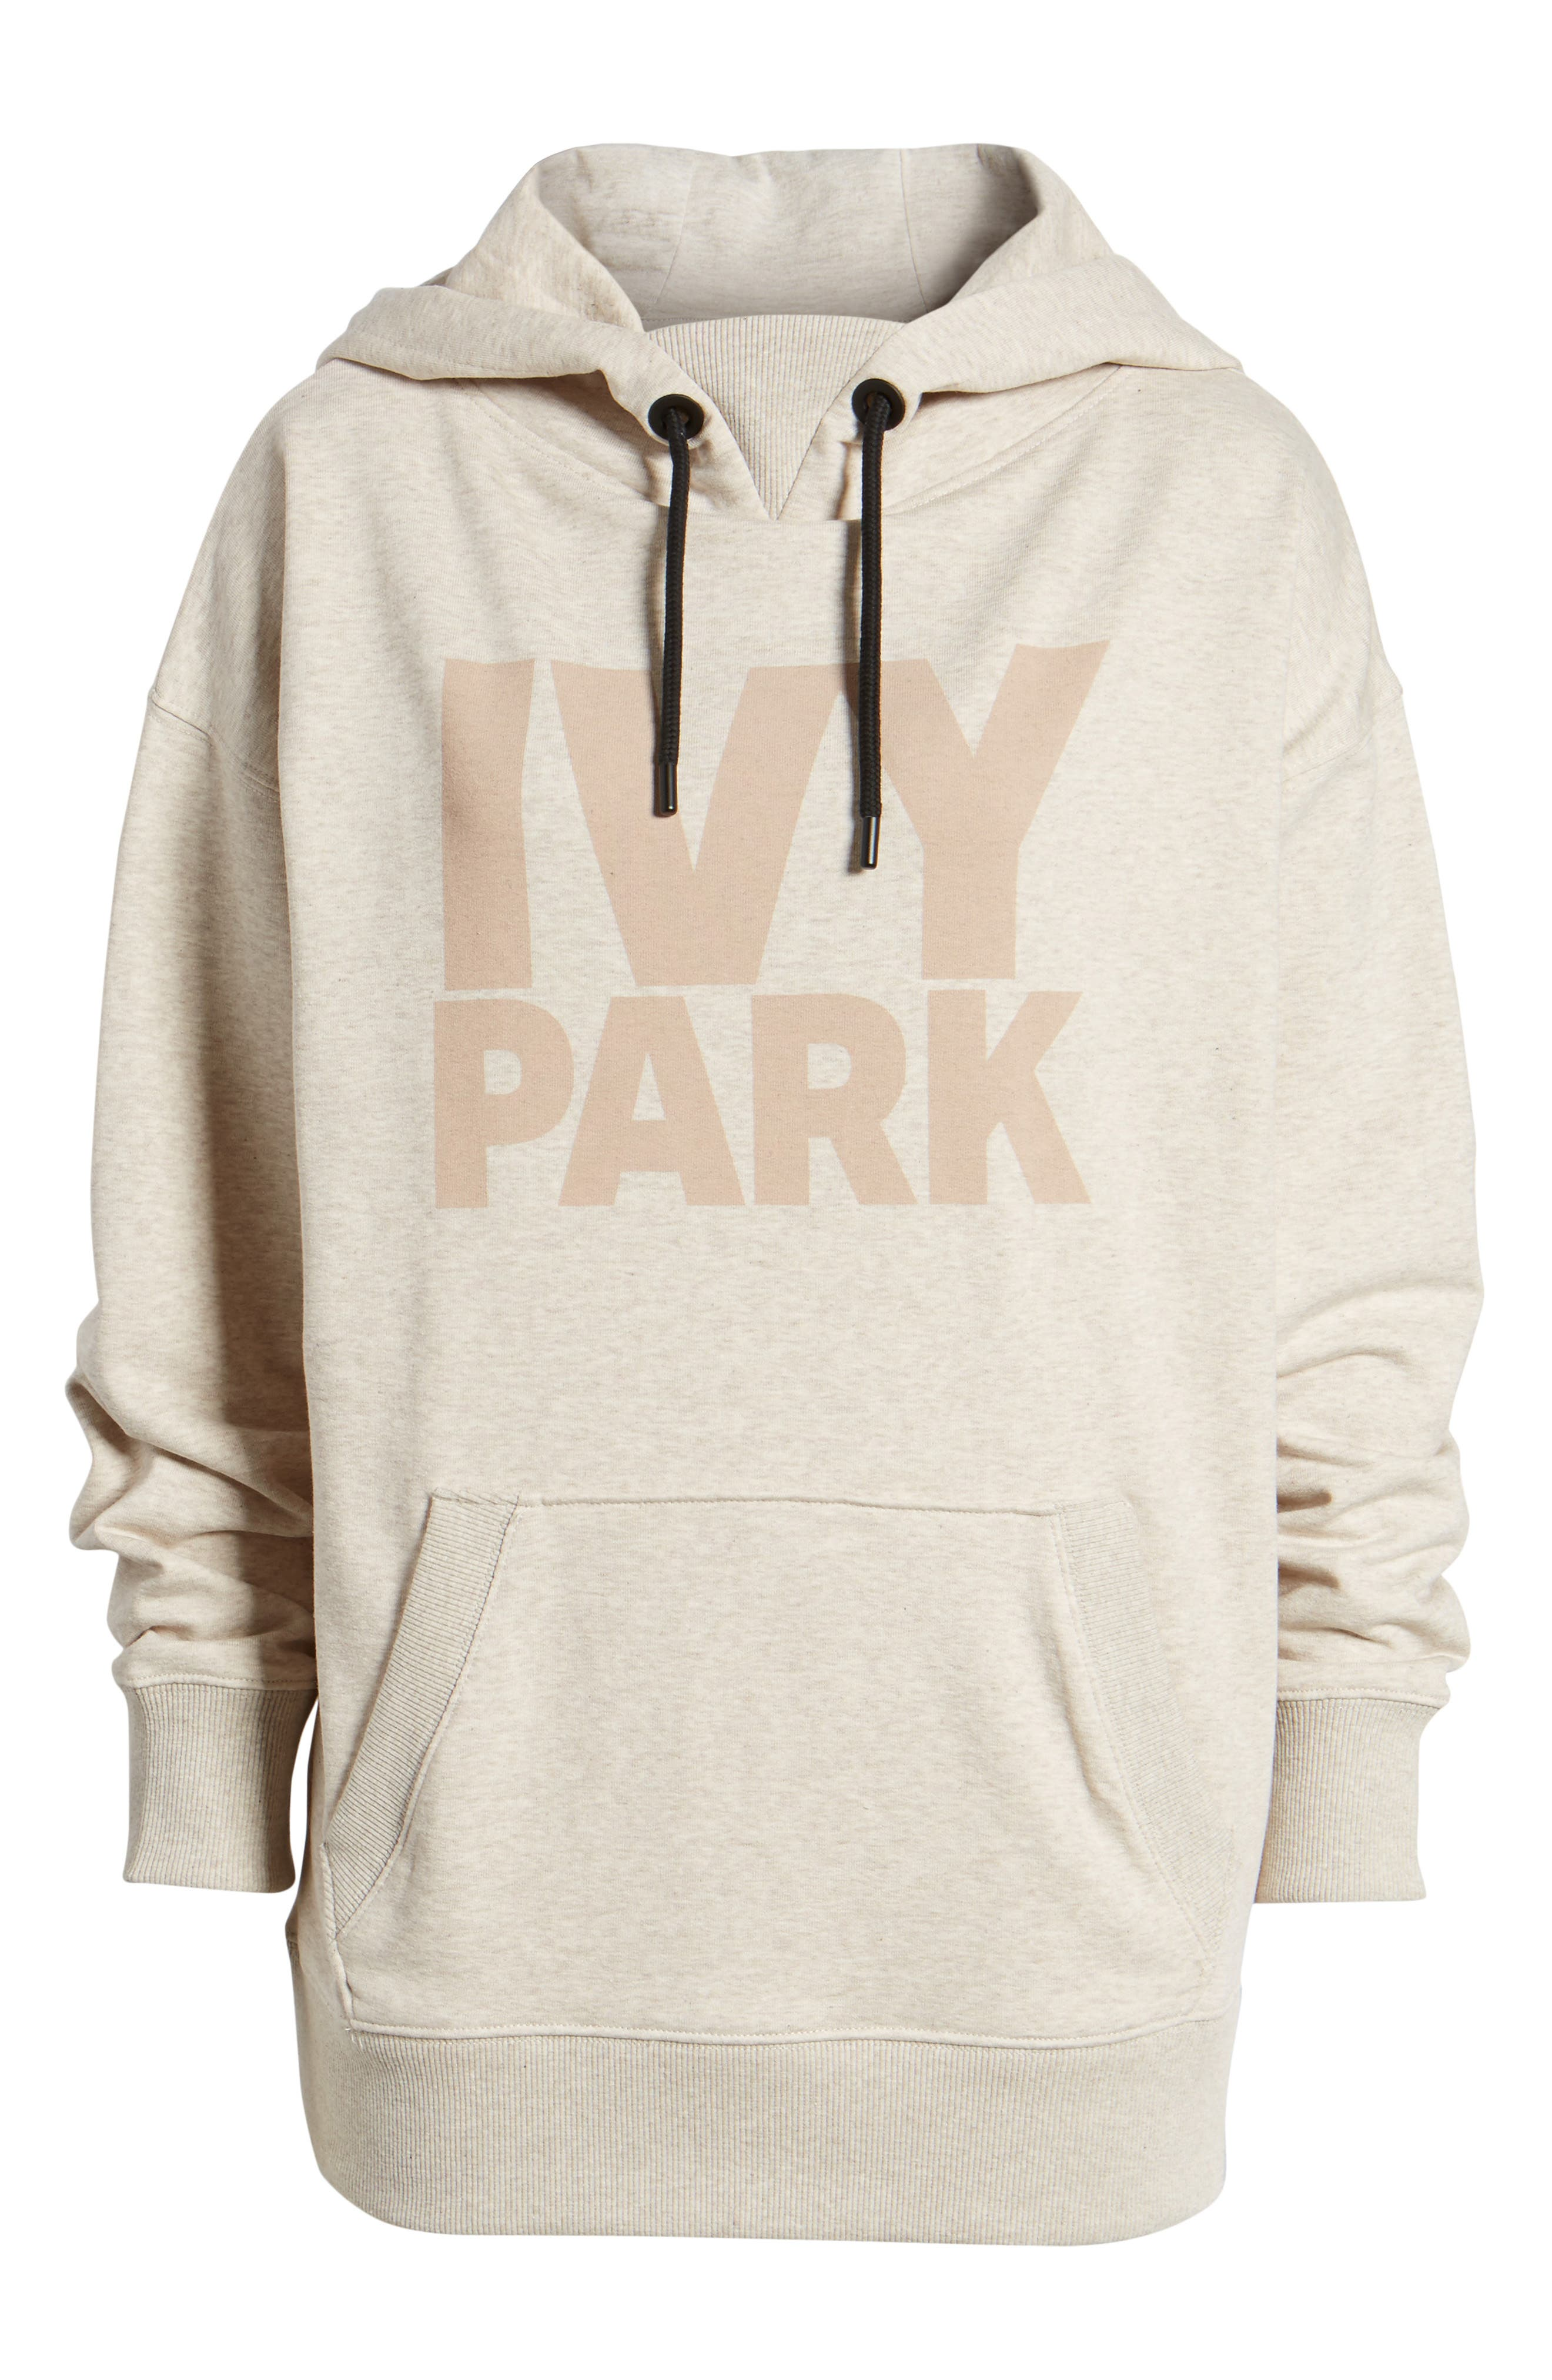 Programme Hoodie,                             Alternate thumbnail 7, color,                             271